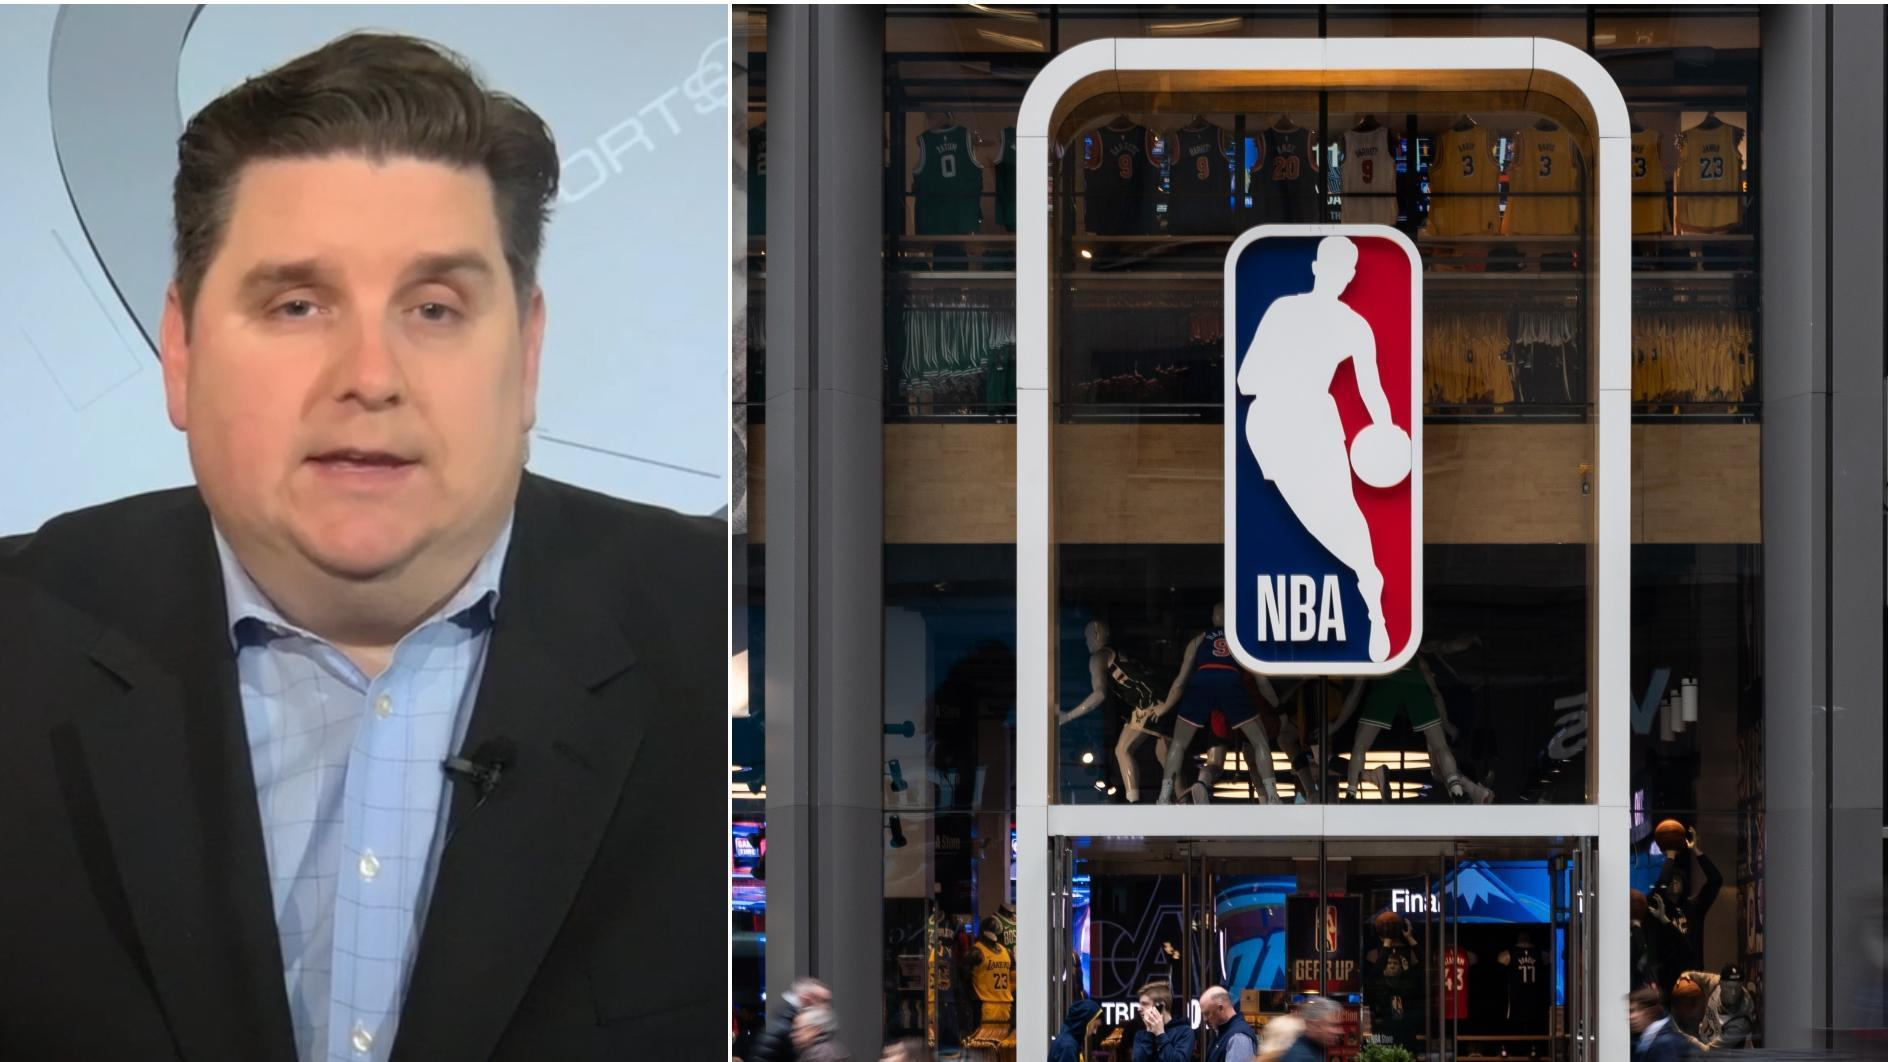 Windhorst: 'Almost 100 percent' NBA season resumes without fans